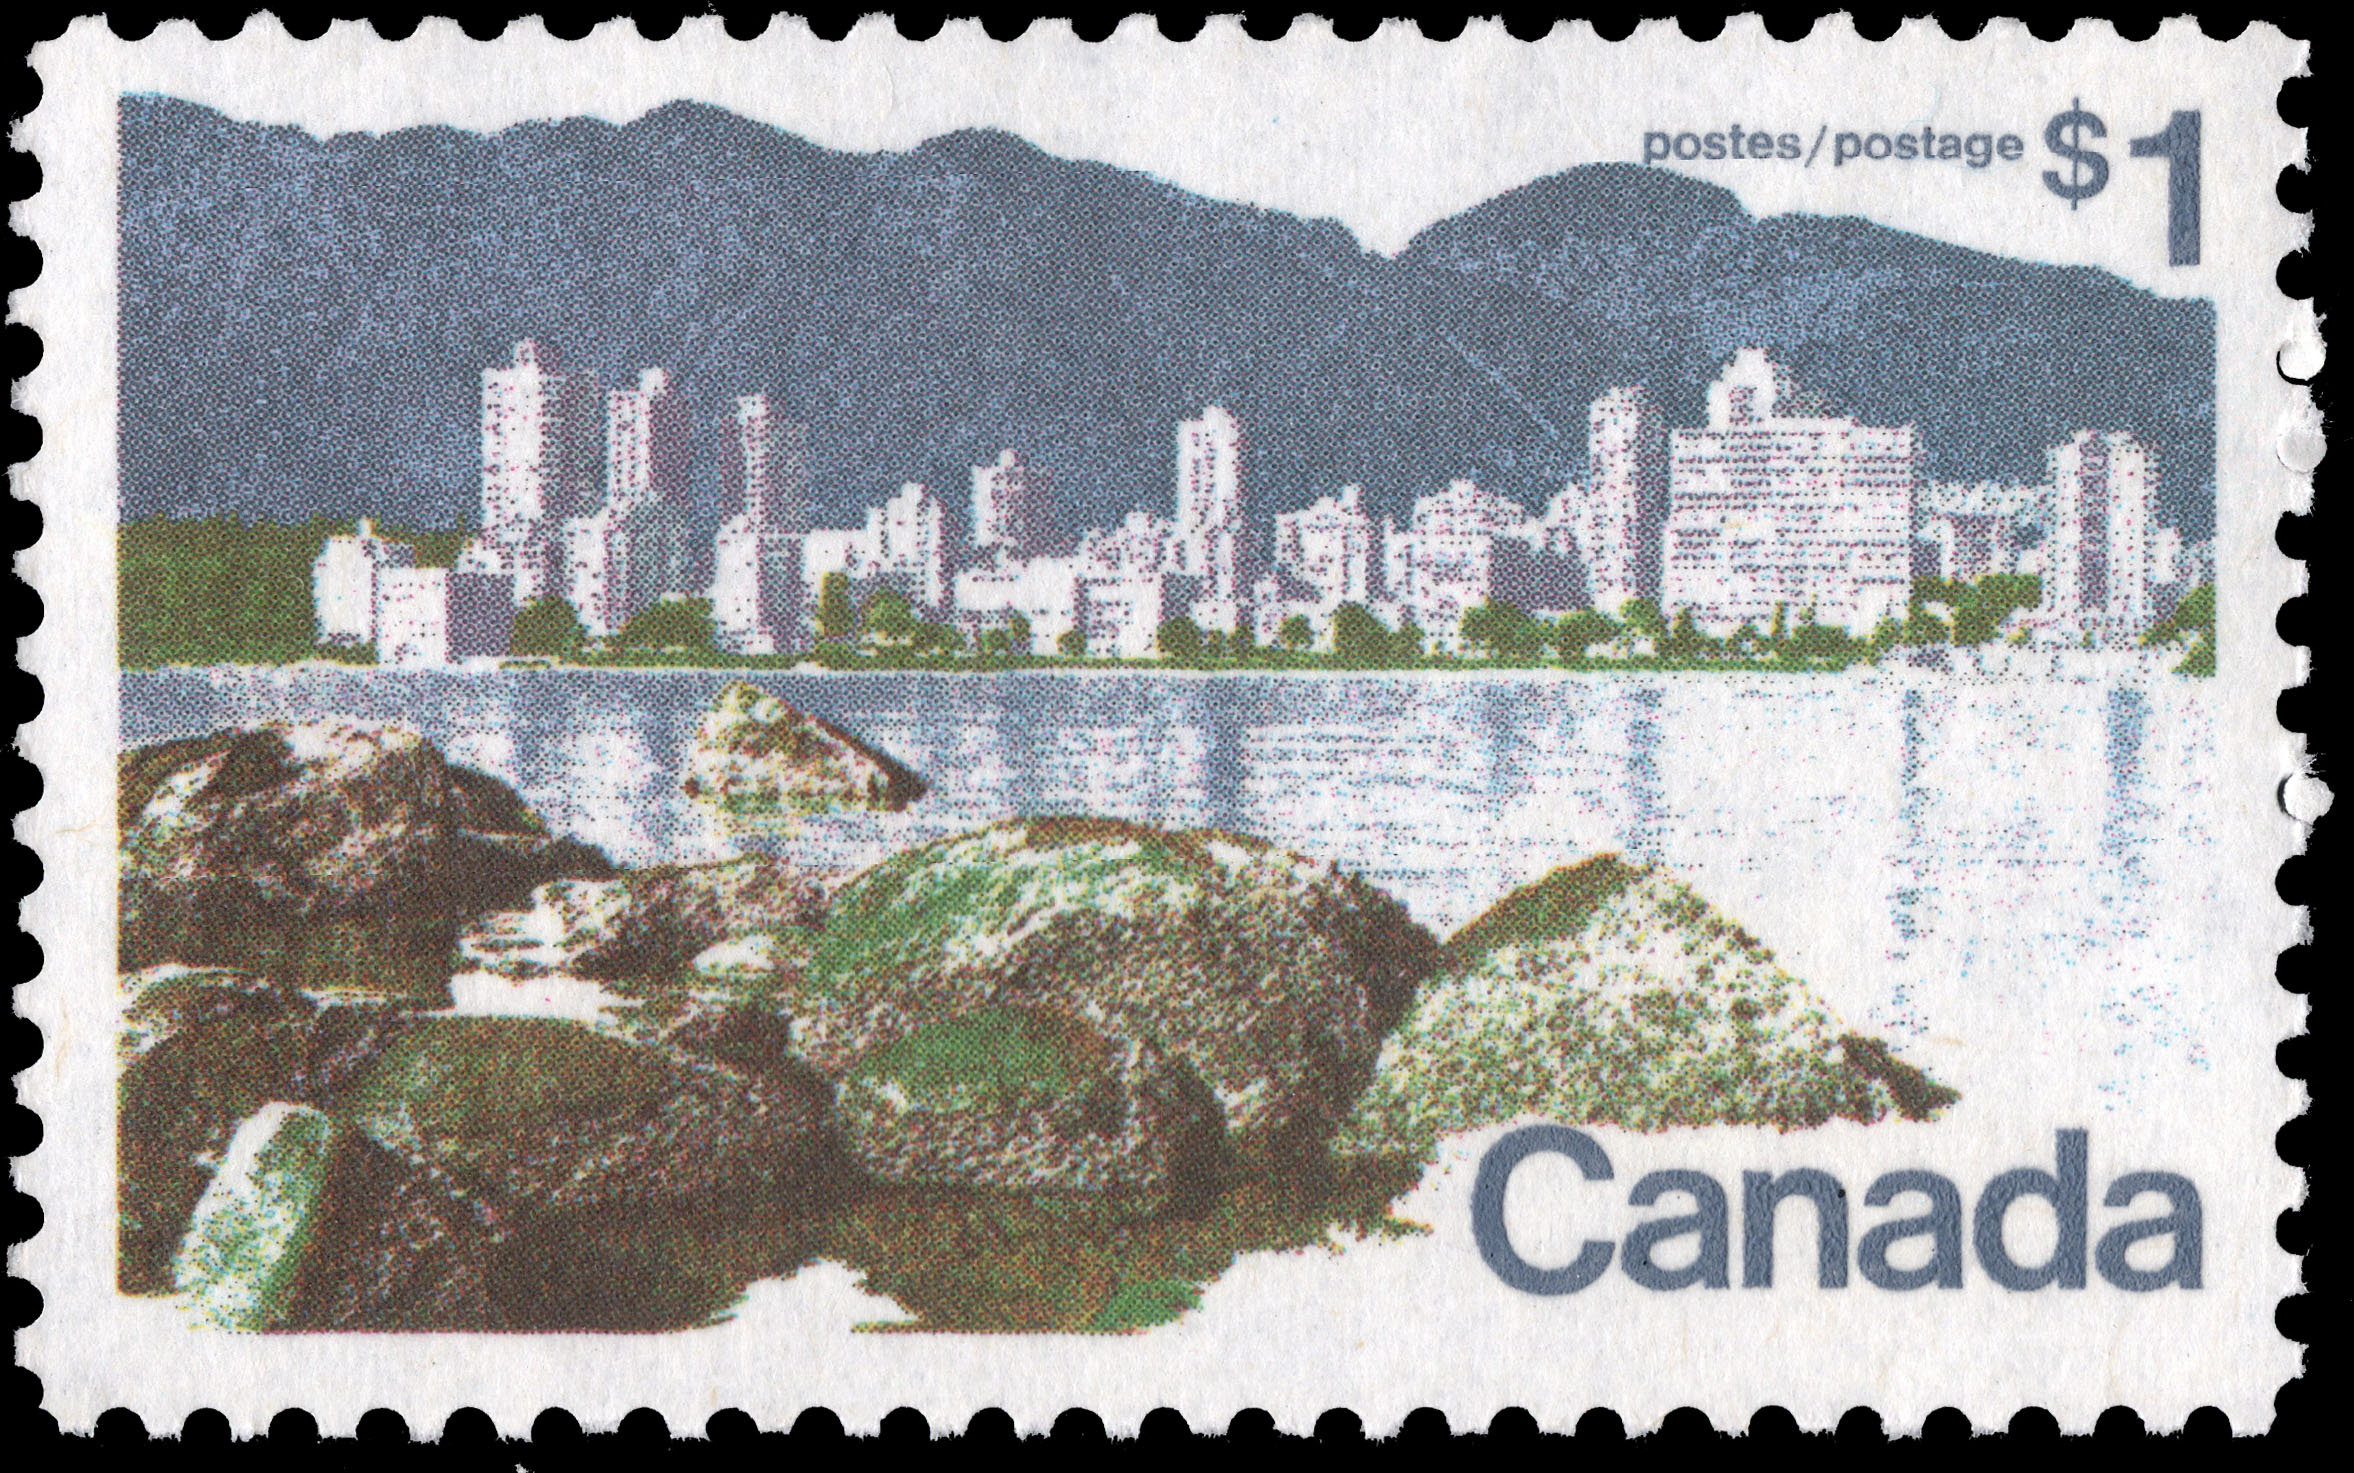 Vancouver Canada Postage Stamp